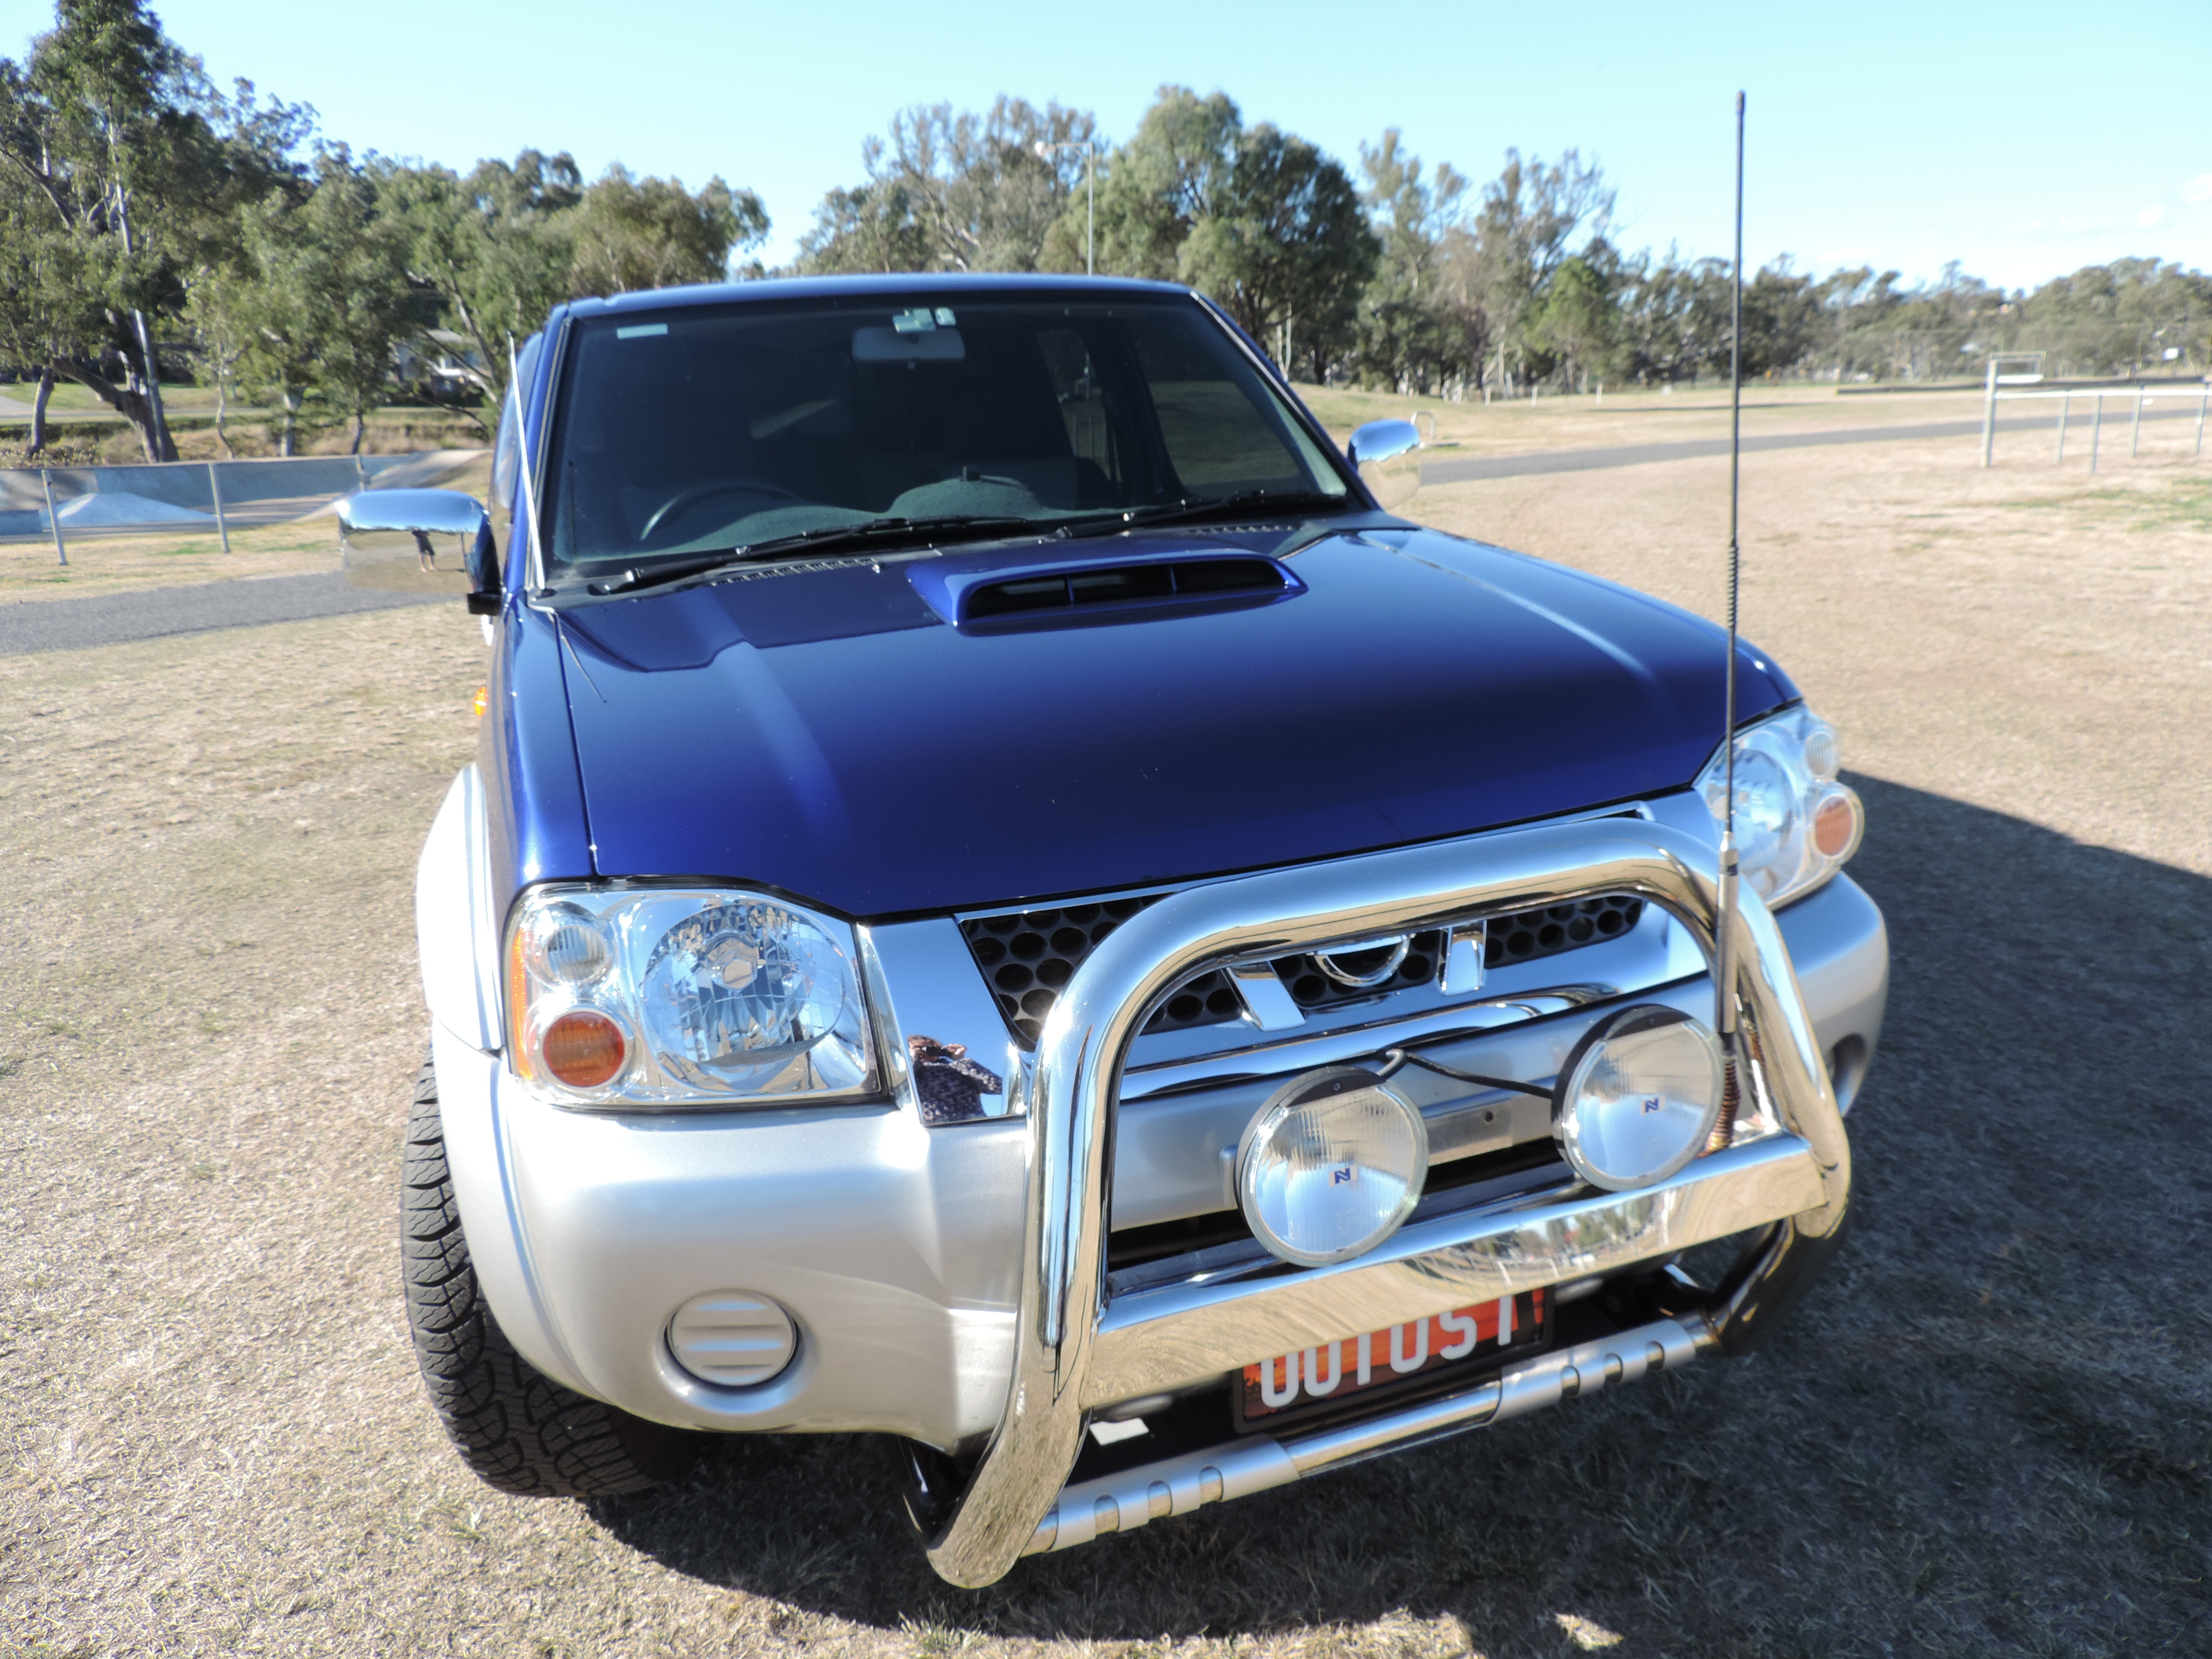 Dual cab. 2.5 Lt Turbo Diesel. 5 speed manual. Only 60000 ks. Dual  batteries. 3 ins exhaust. Tow bar . Canopy.Tub liner.  C/ locking. GPS. Power windows.Reverse camera. Nudge bar. Tinted windows.  Excellent condition. $19000